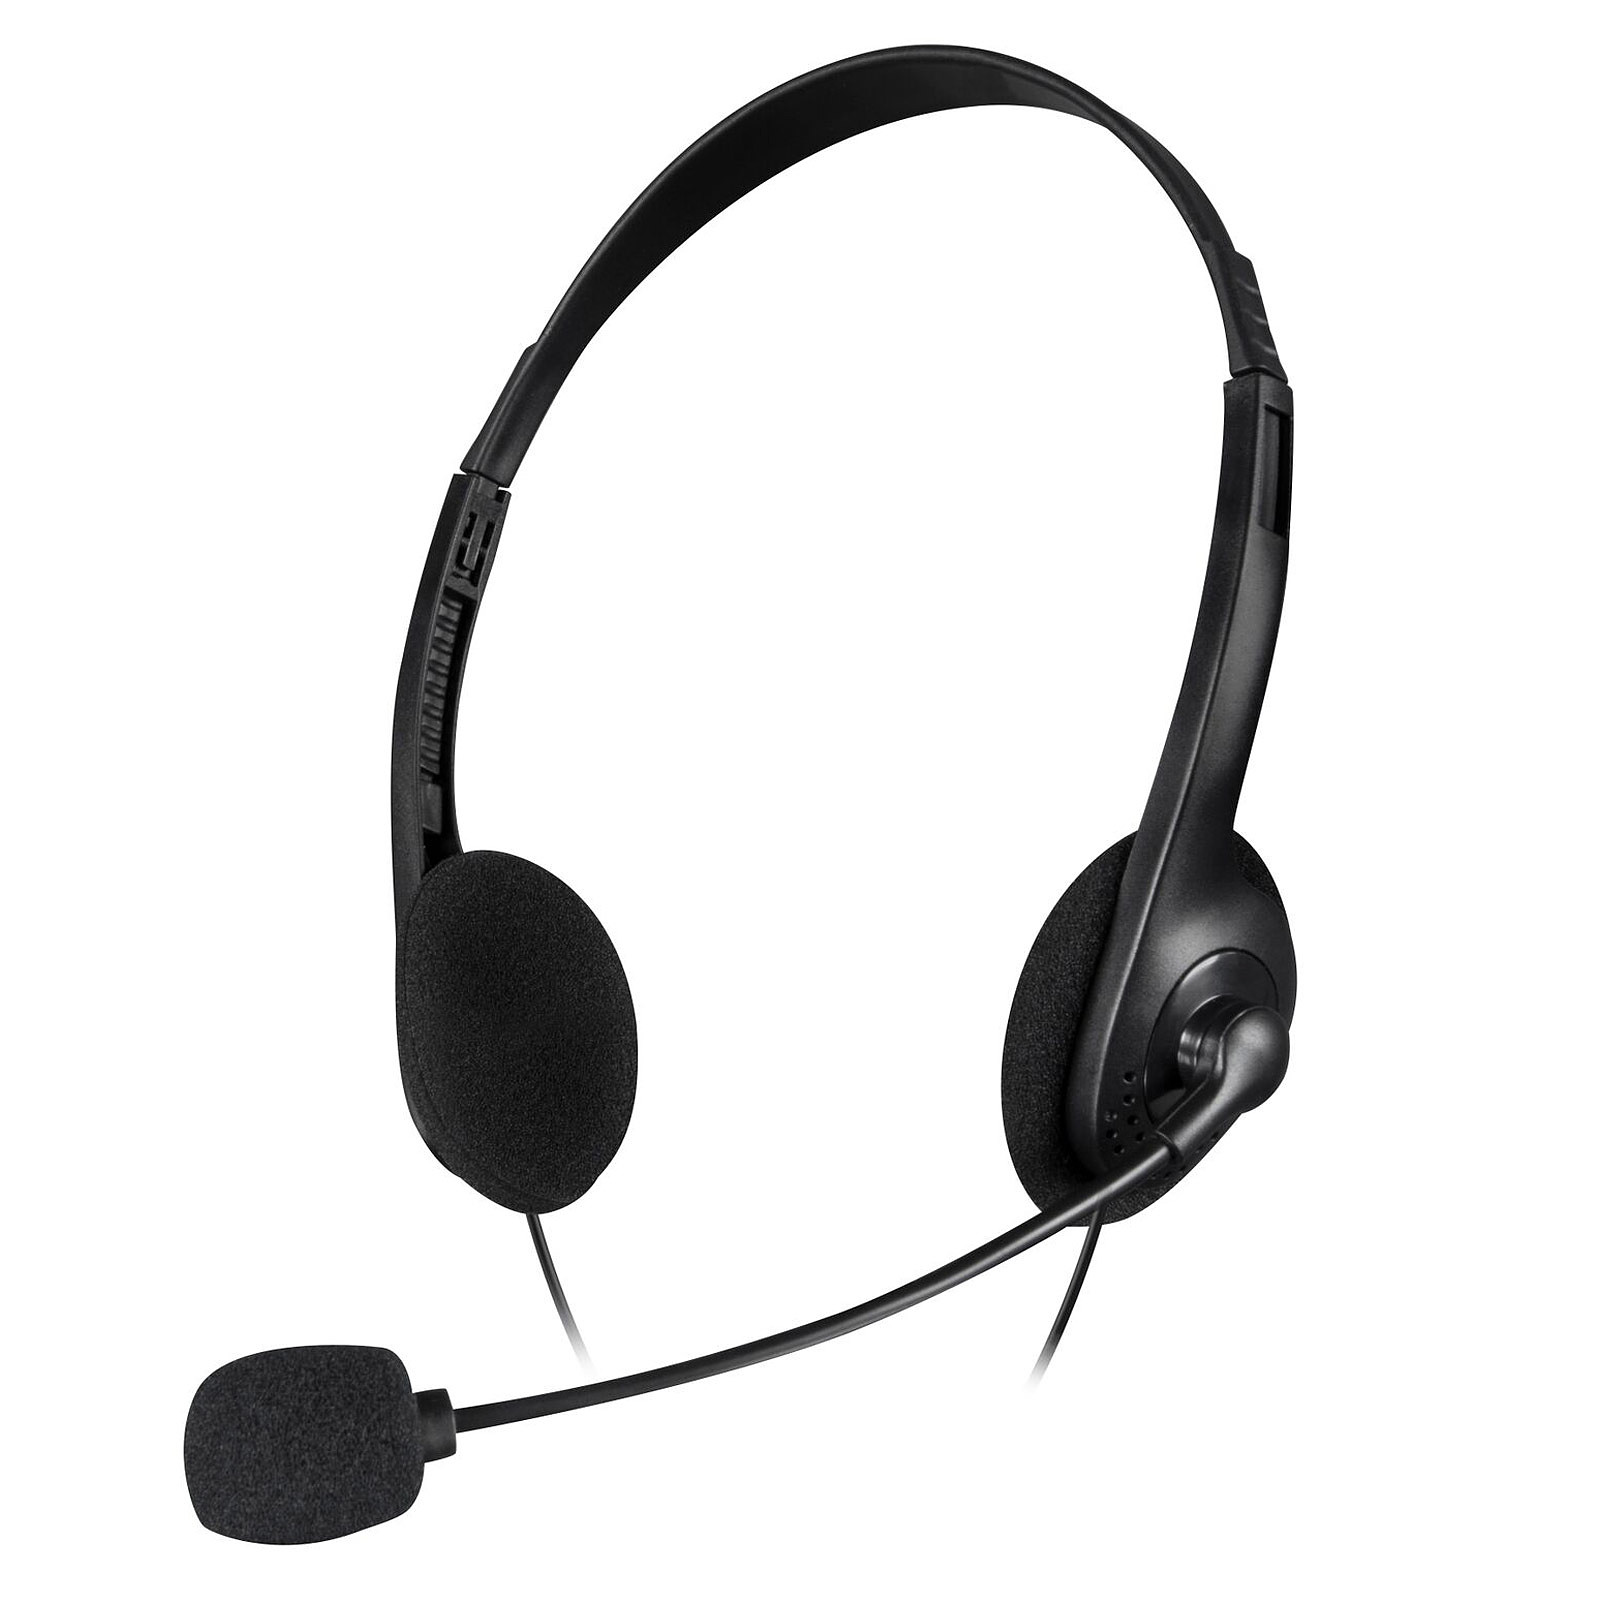 Mobility Lab Stereo Headset 250